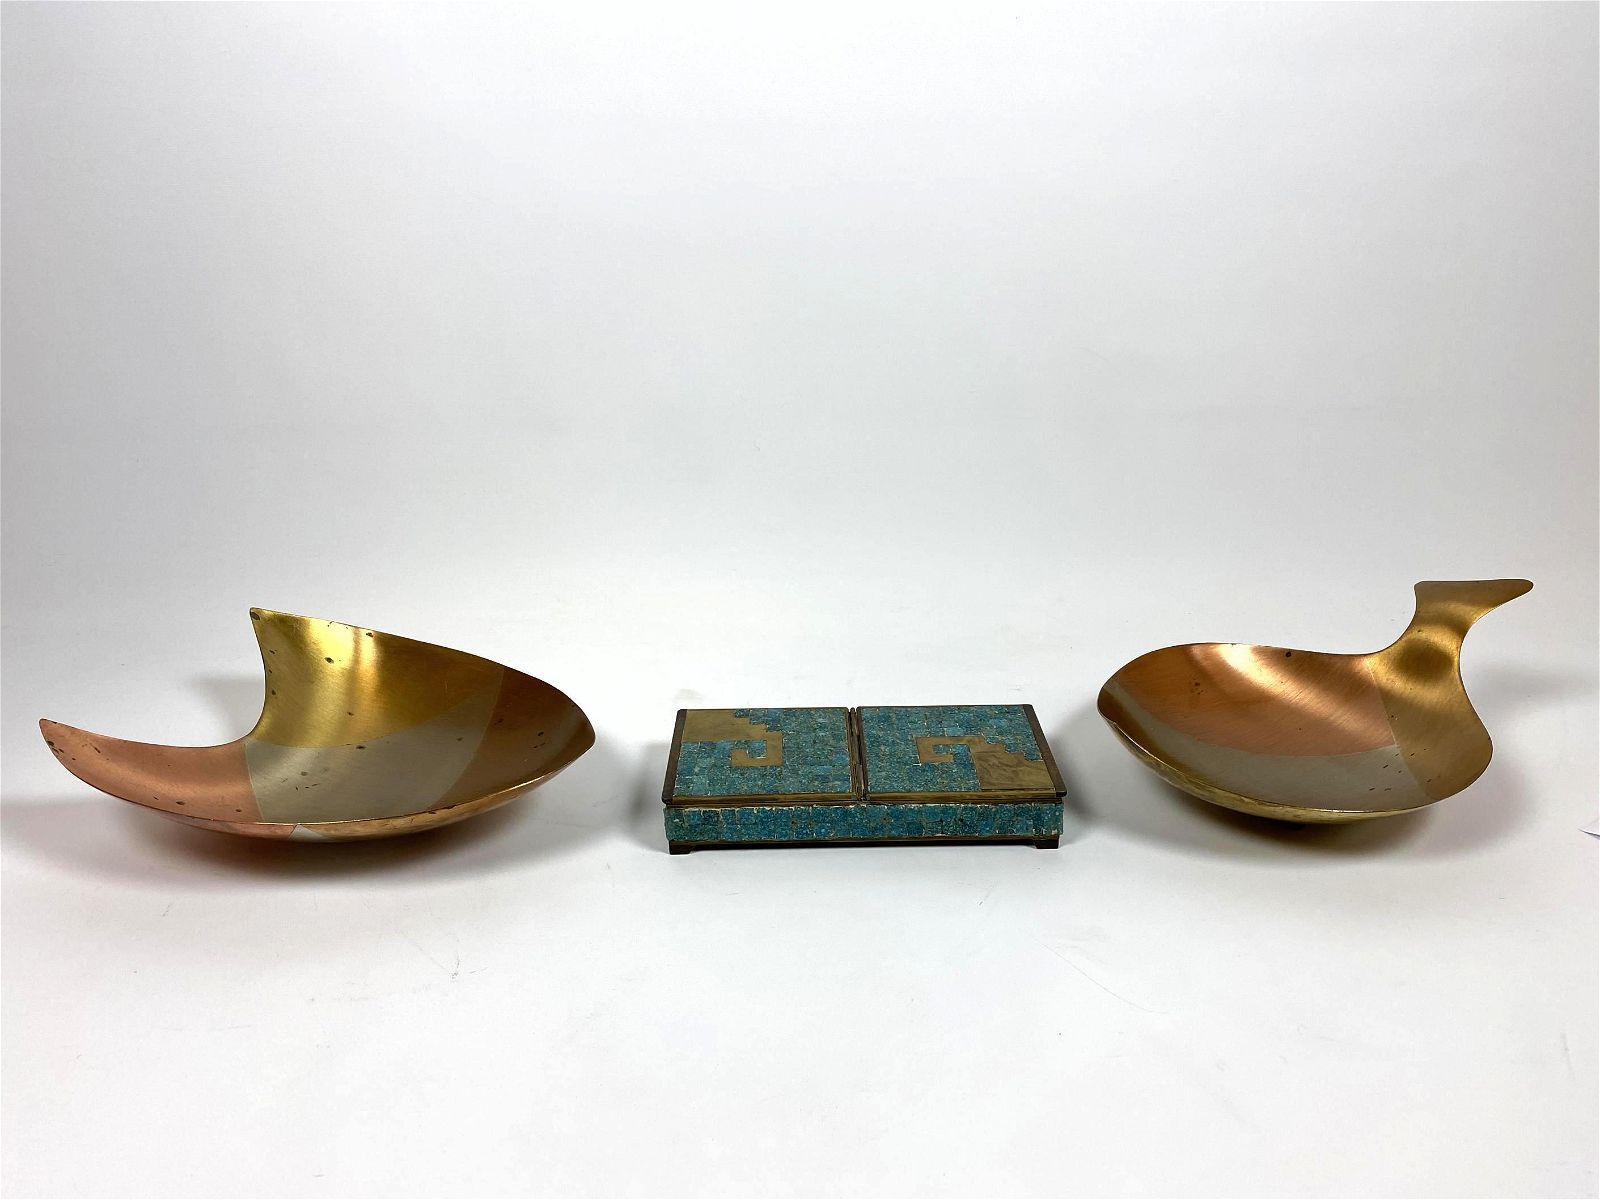 3pc Modernist Mexican Metals Lot. Inlaid glass tile bra